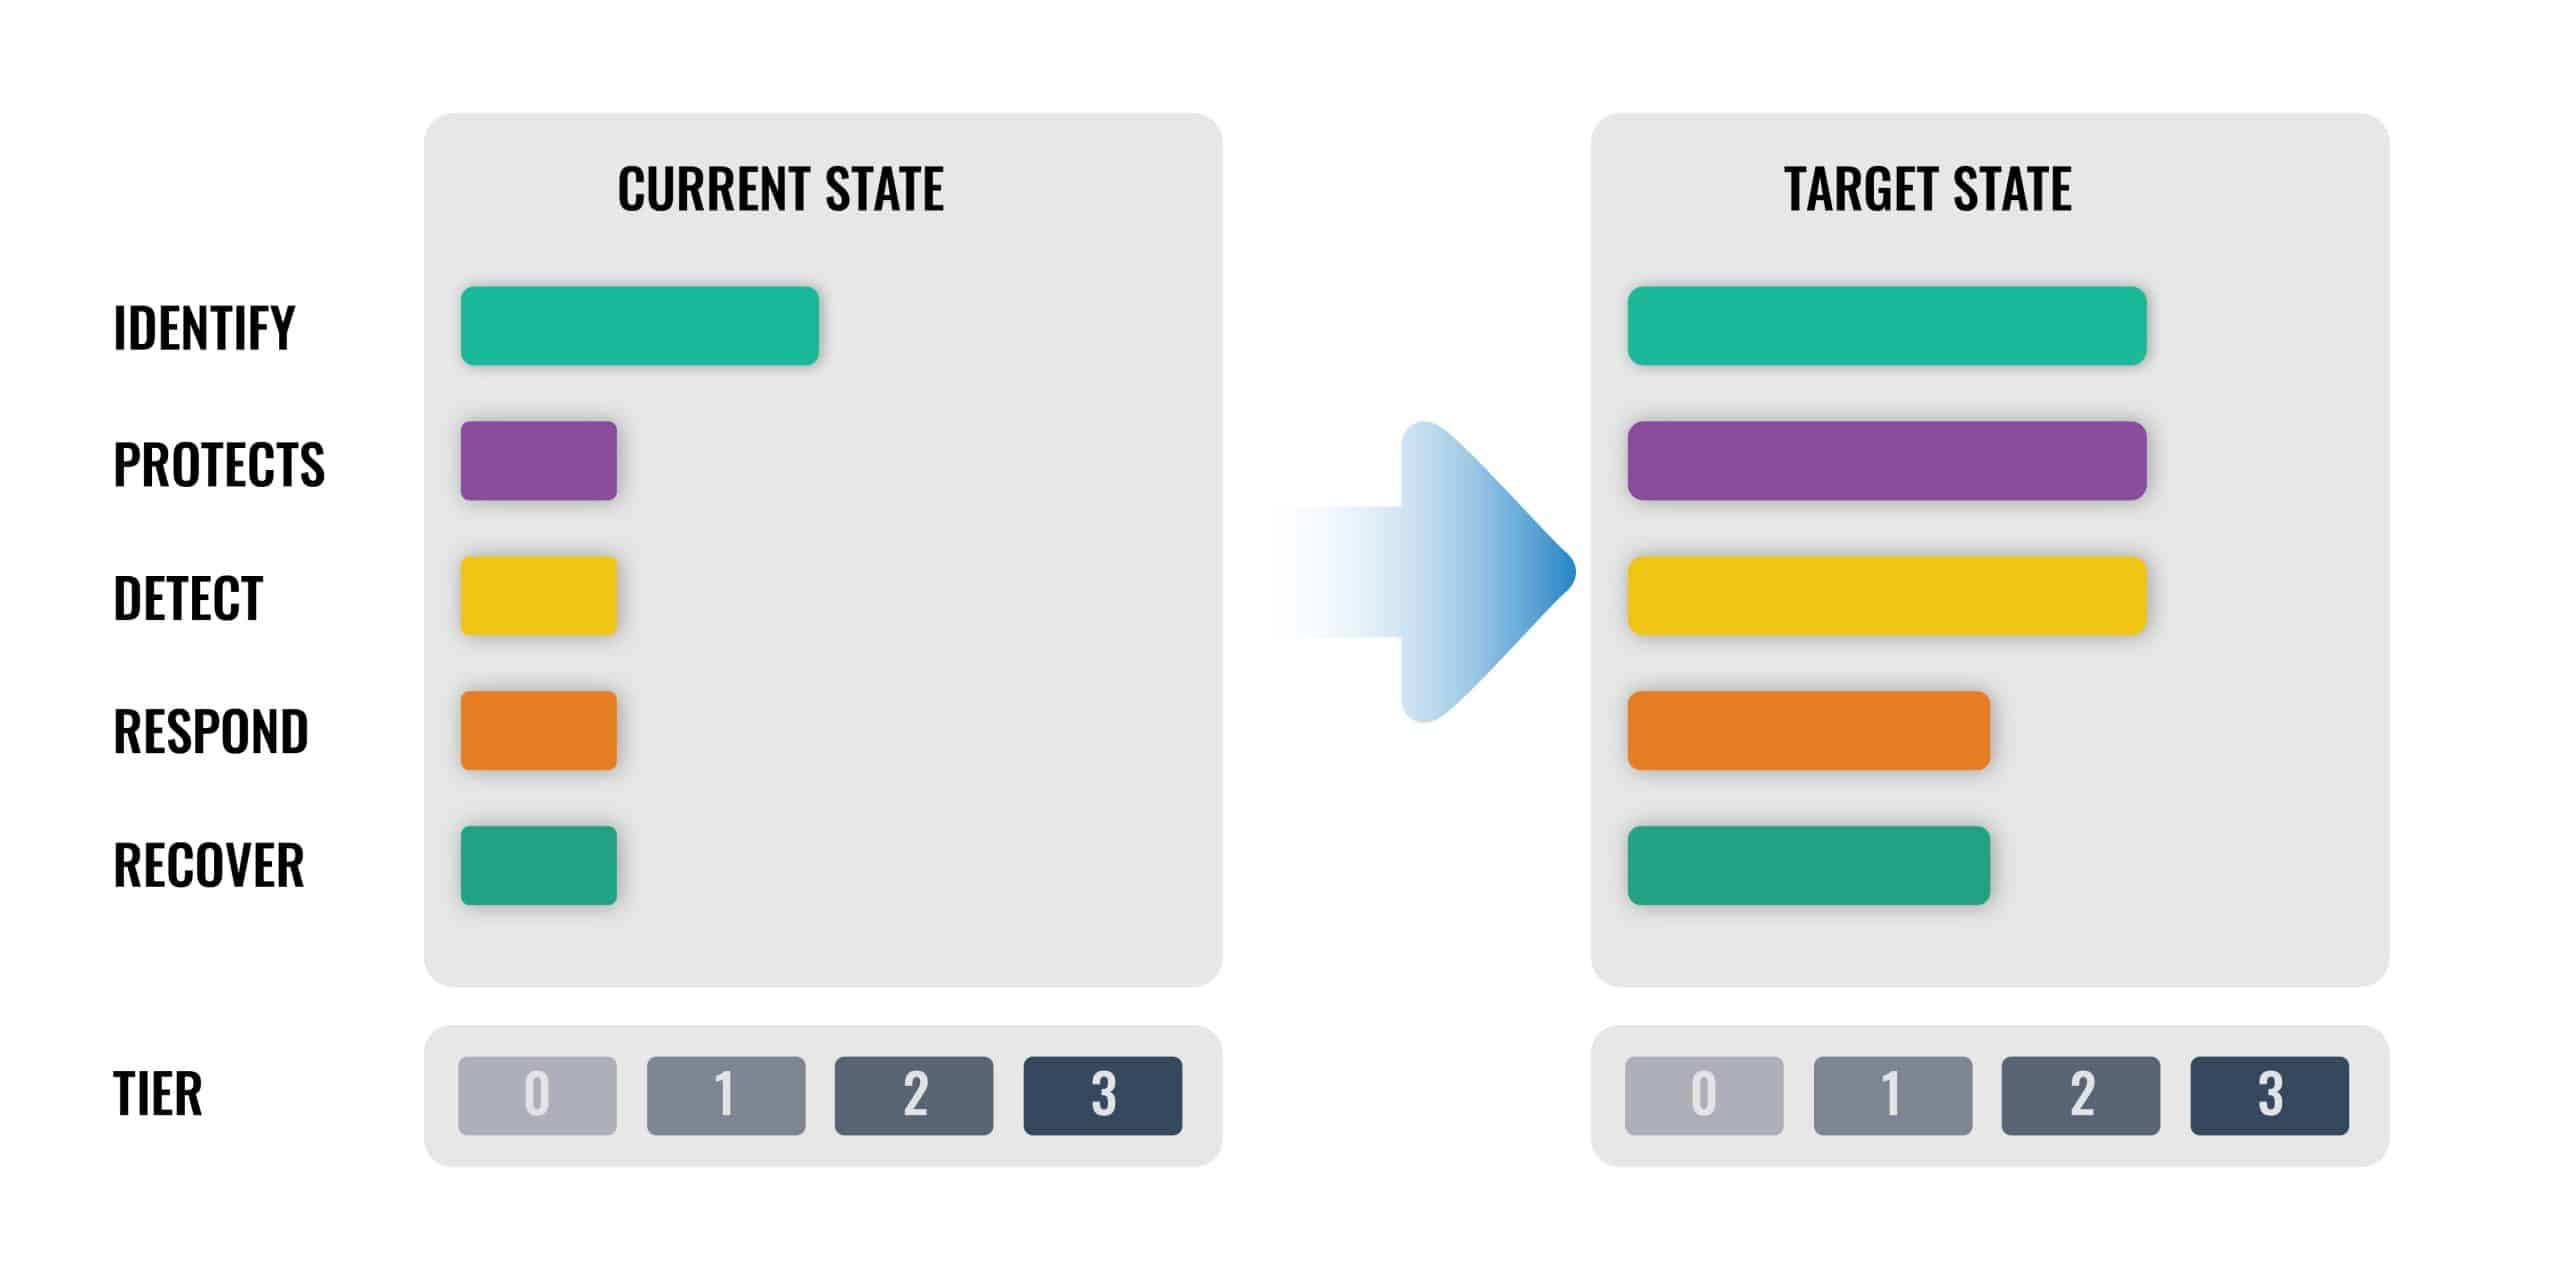 NIST CSF Profile: Current Vs. Target State